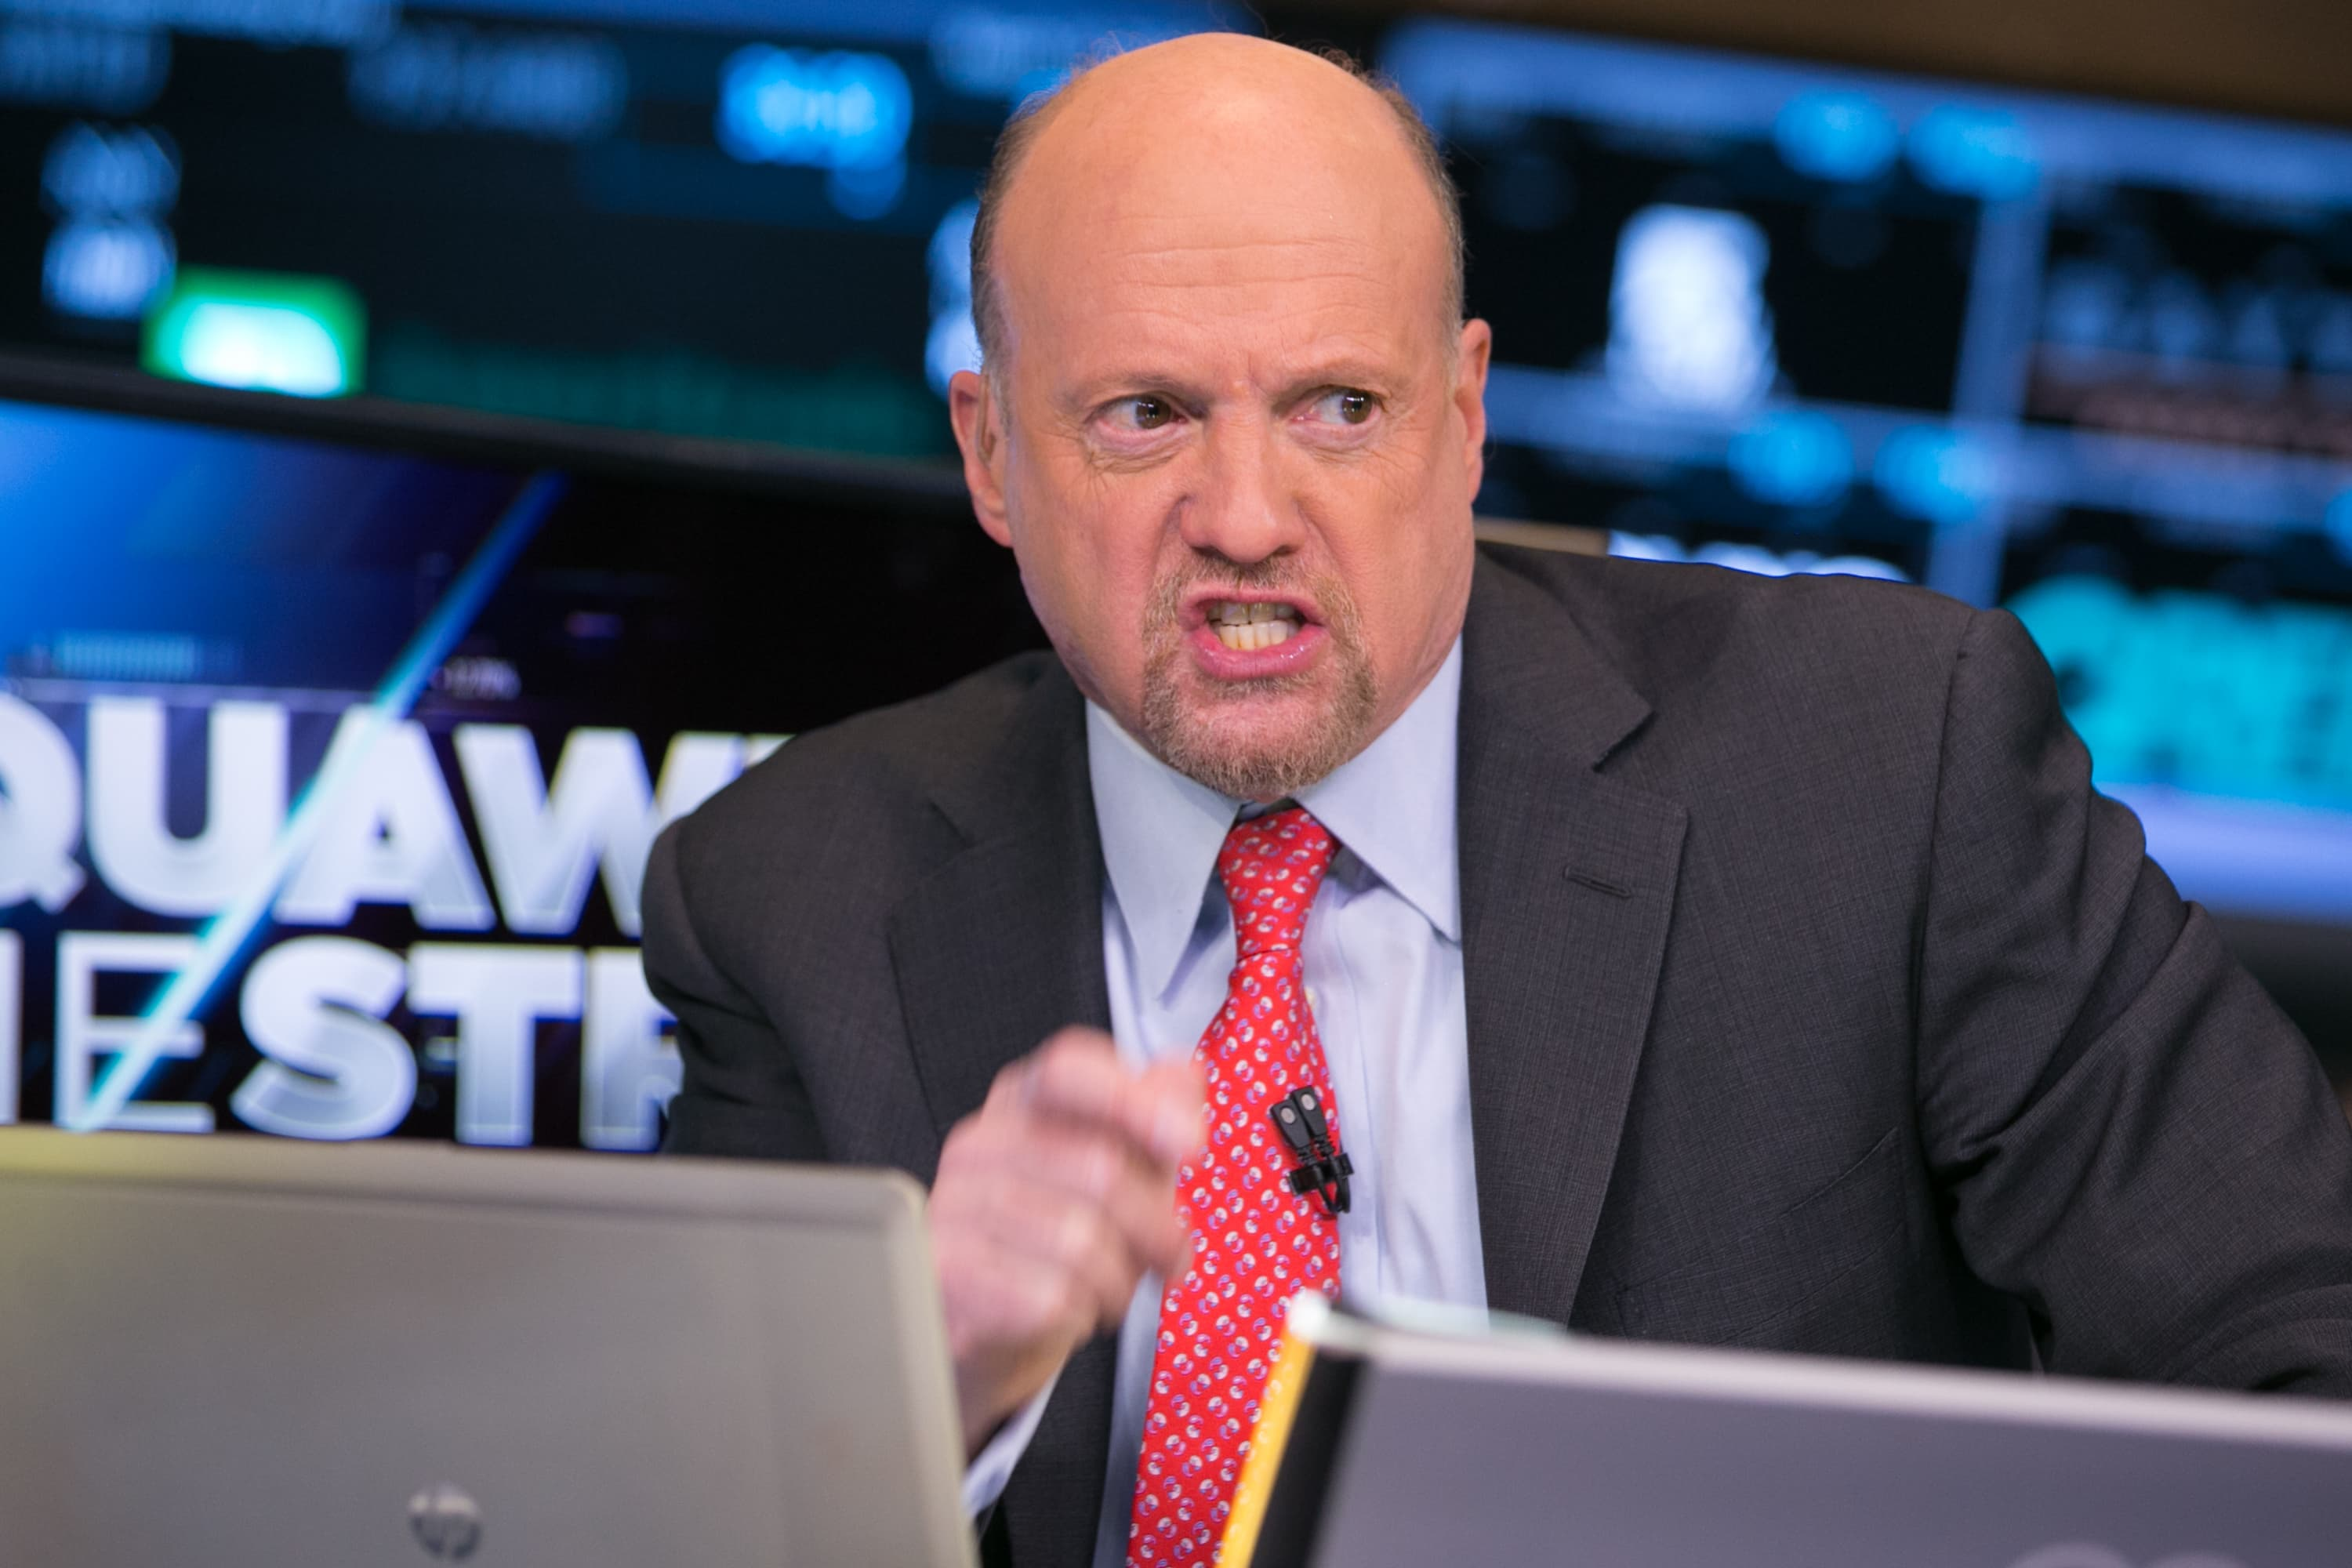 'You're being faked out' — Cramer says the US economy is better than the stock market reflects